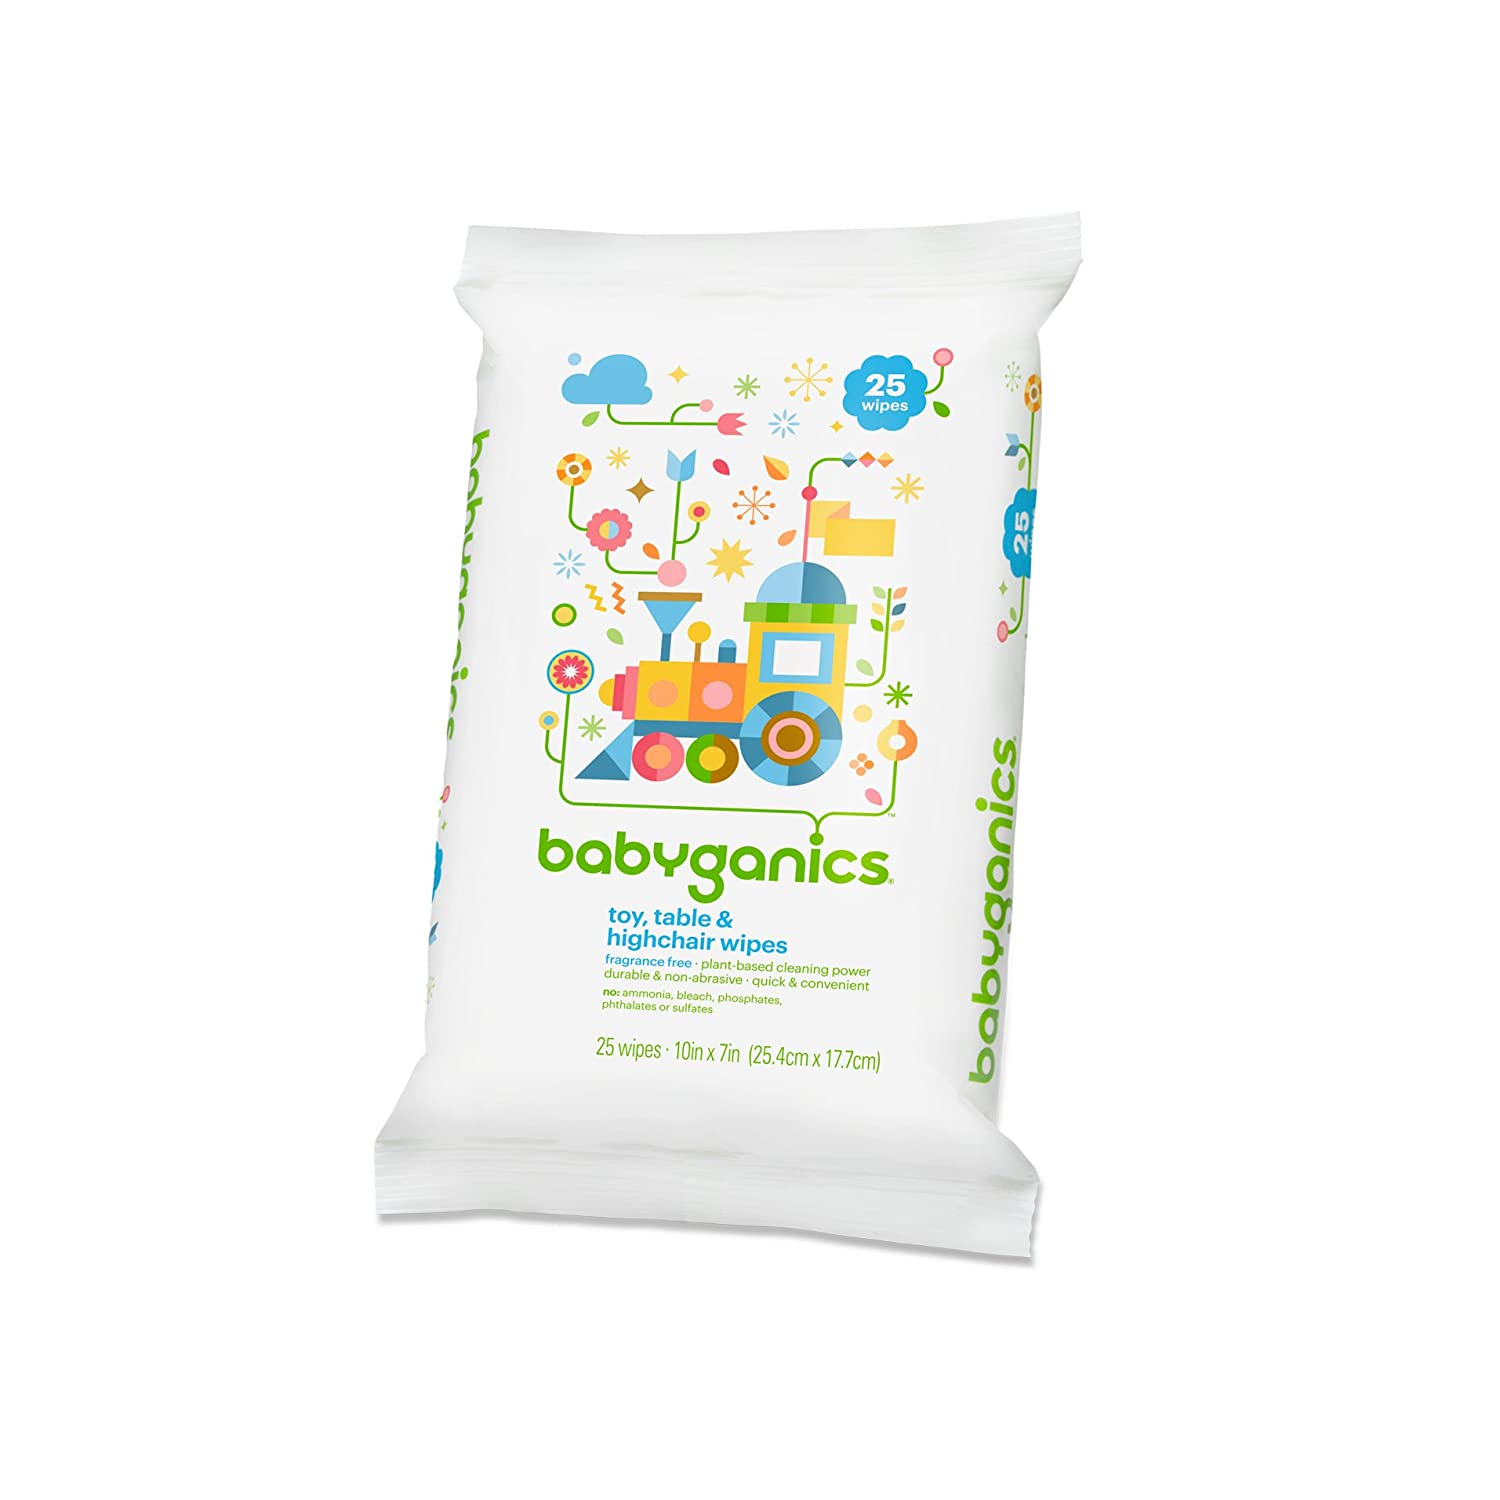 Babyganics Toy Table and High Chair Wipes, Fragrance Free, 25 ct BG-218